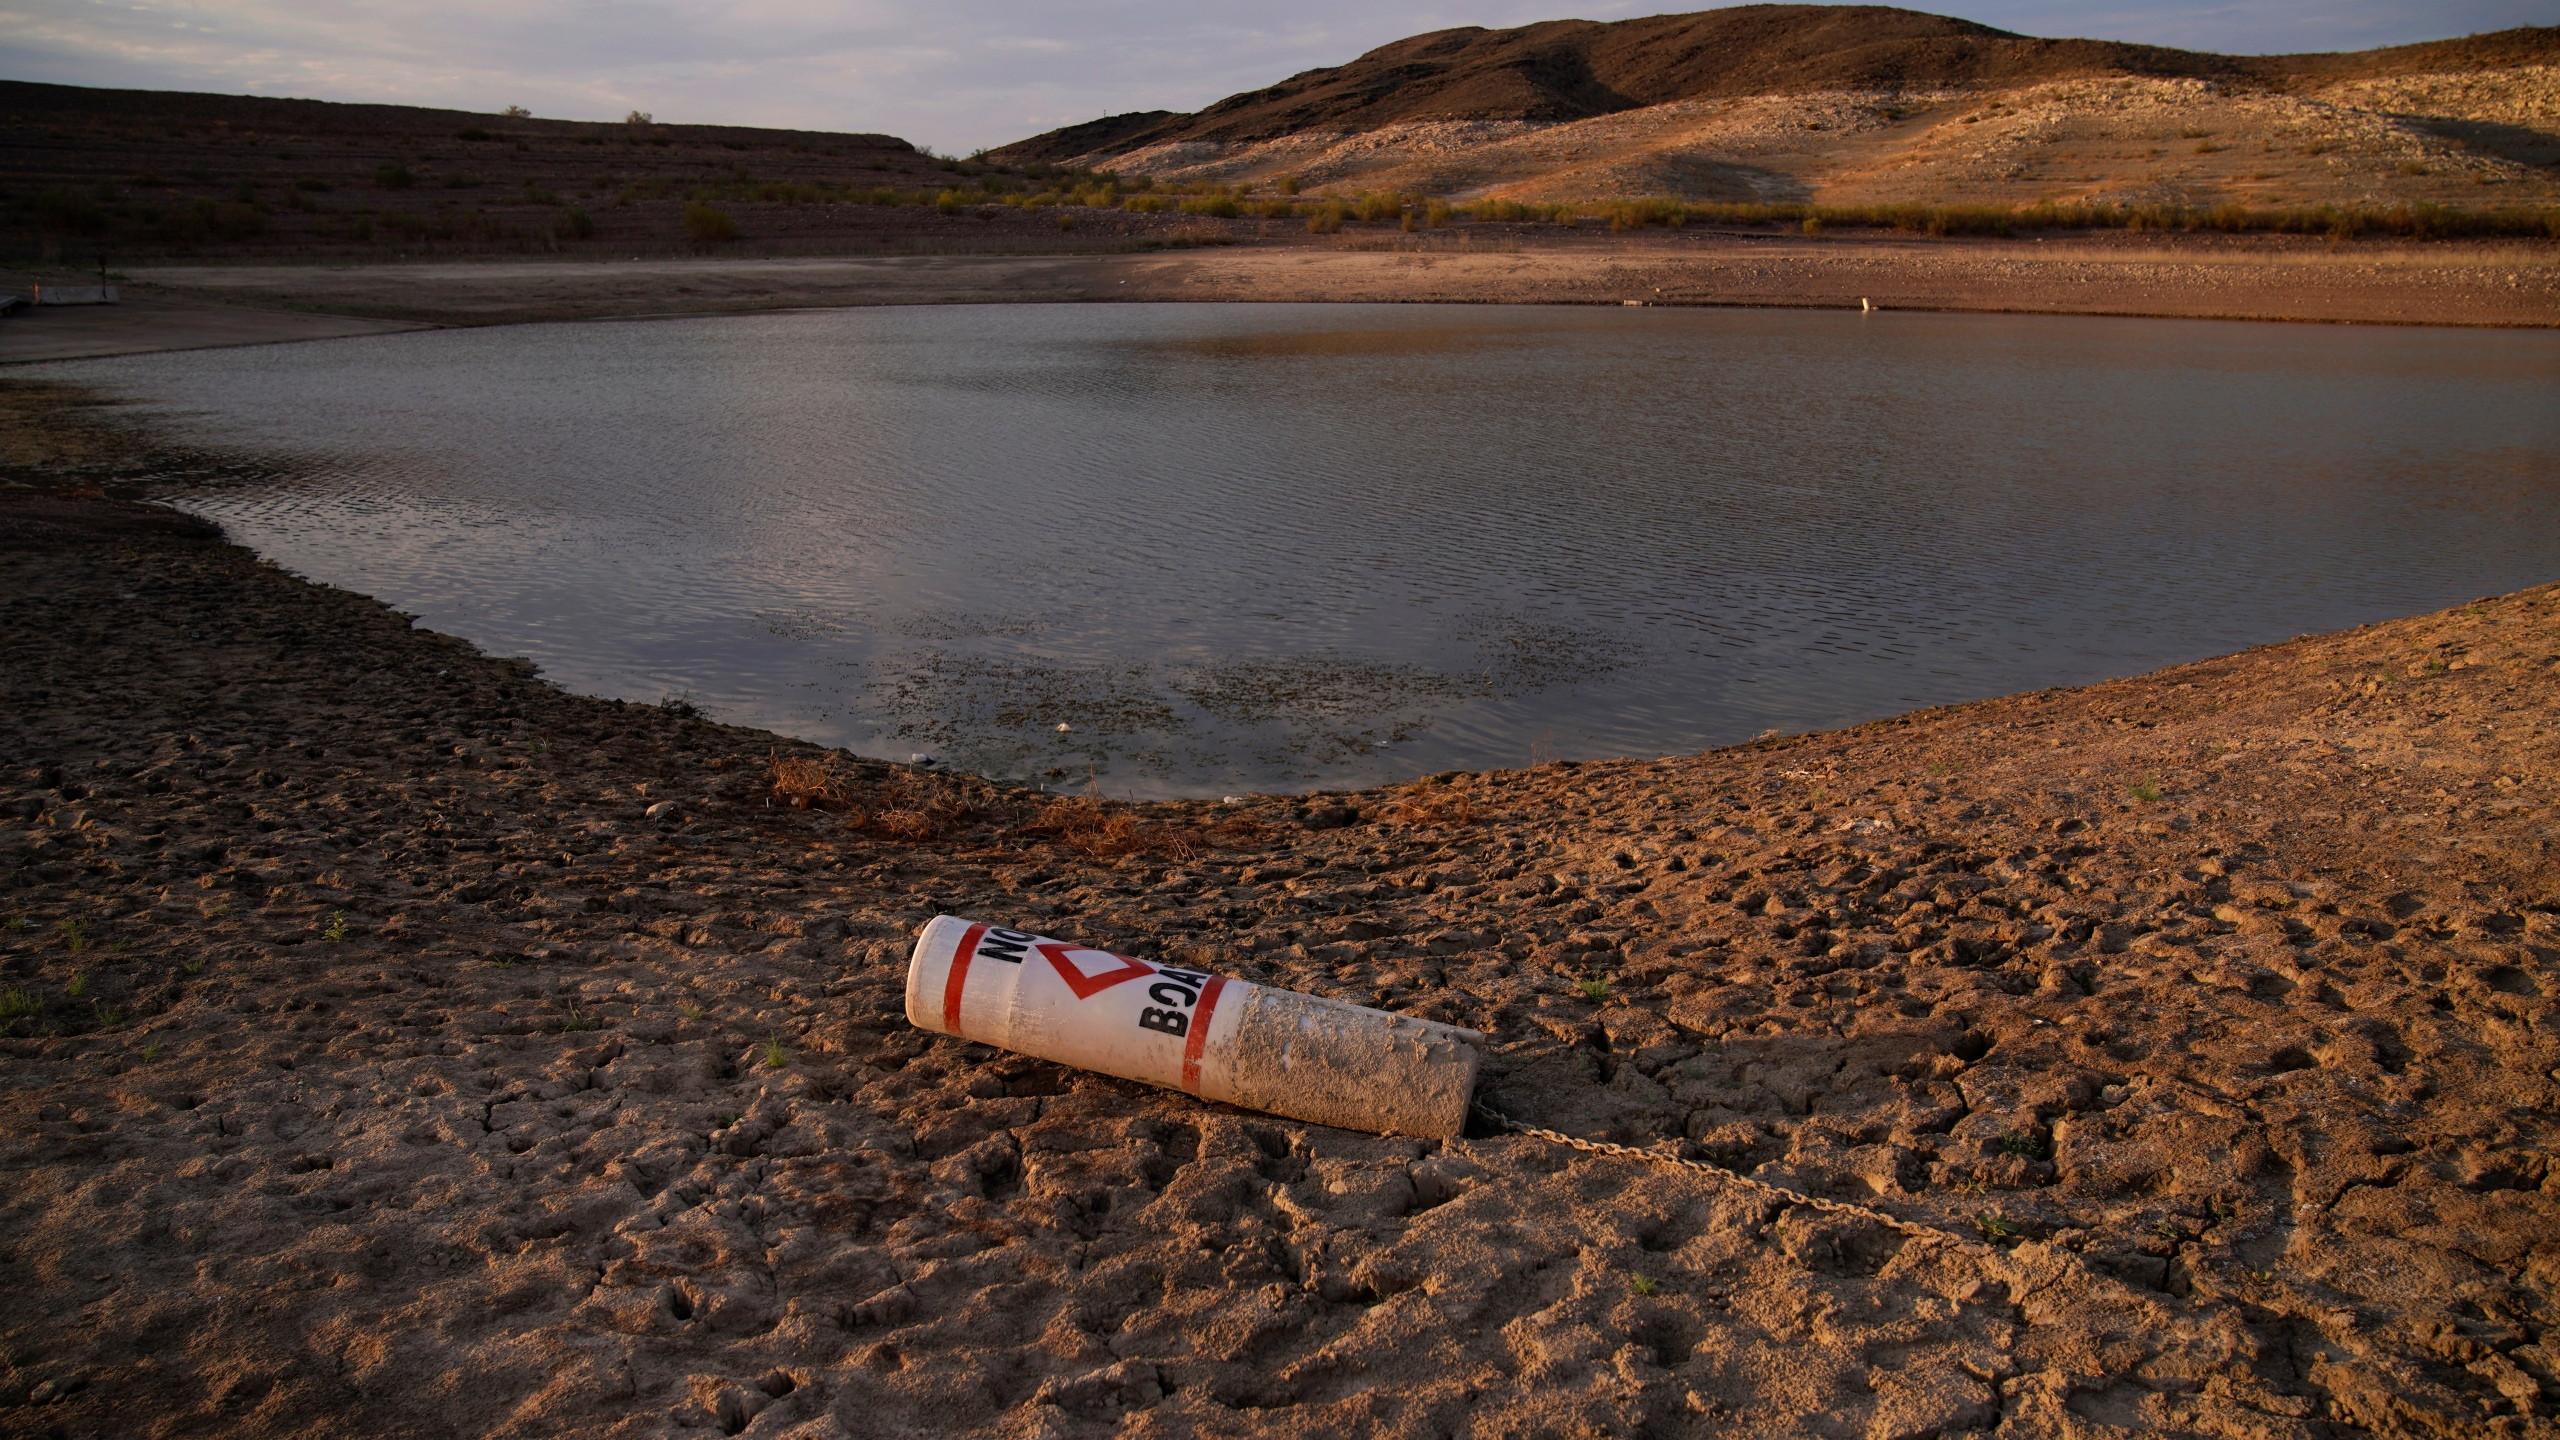 A buoy rests on the ground at a closed boat ramp on Lake Mead at the Lake Mead National Recreation Area near Boulder City, Nev., on Aug. 13, 2021. (John Locher / Associated Press)